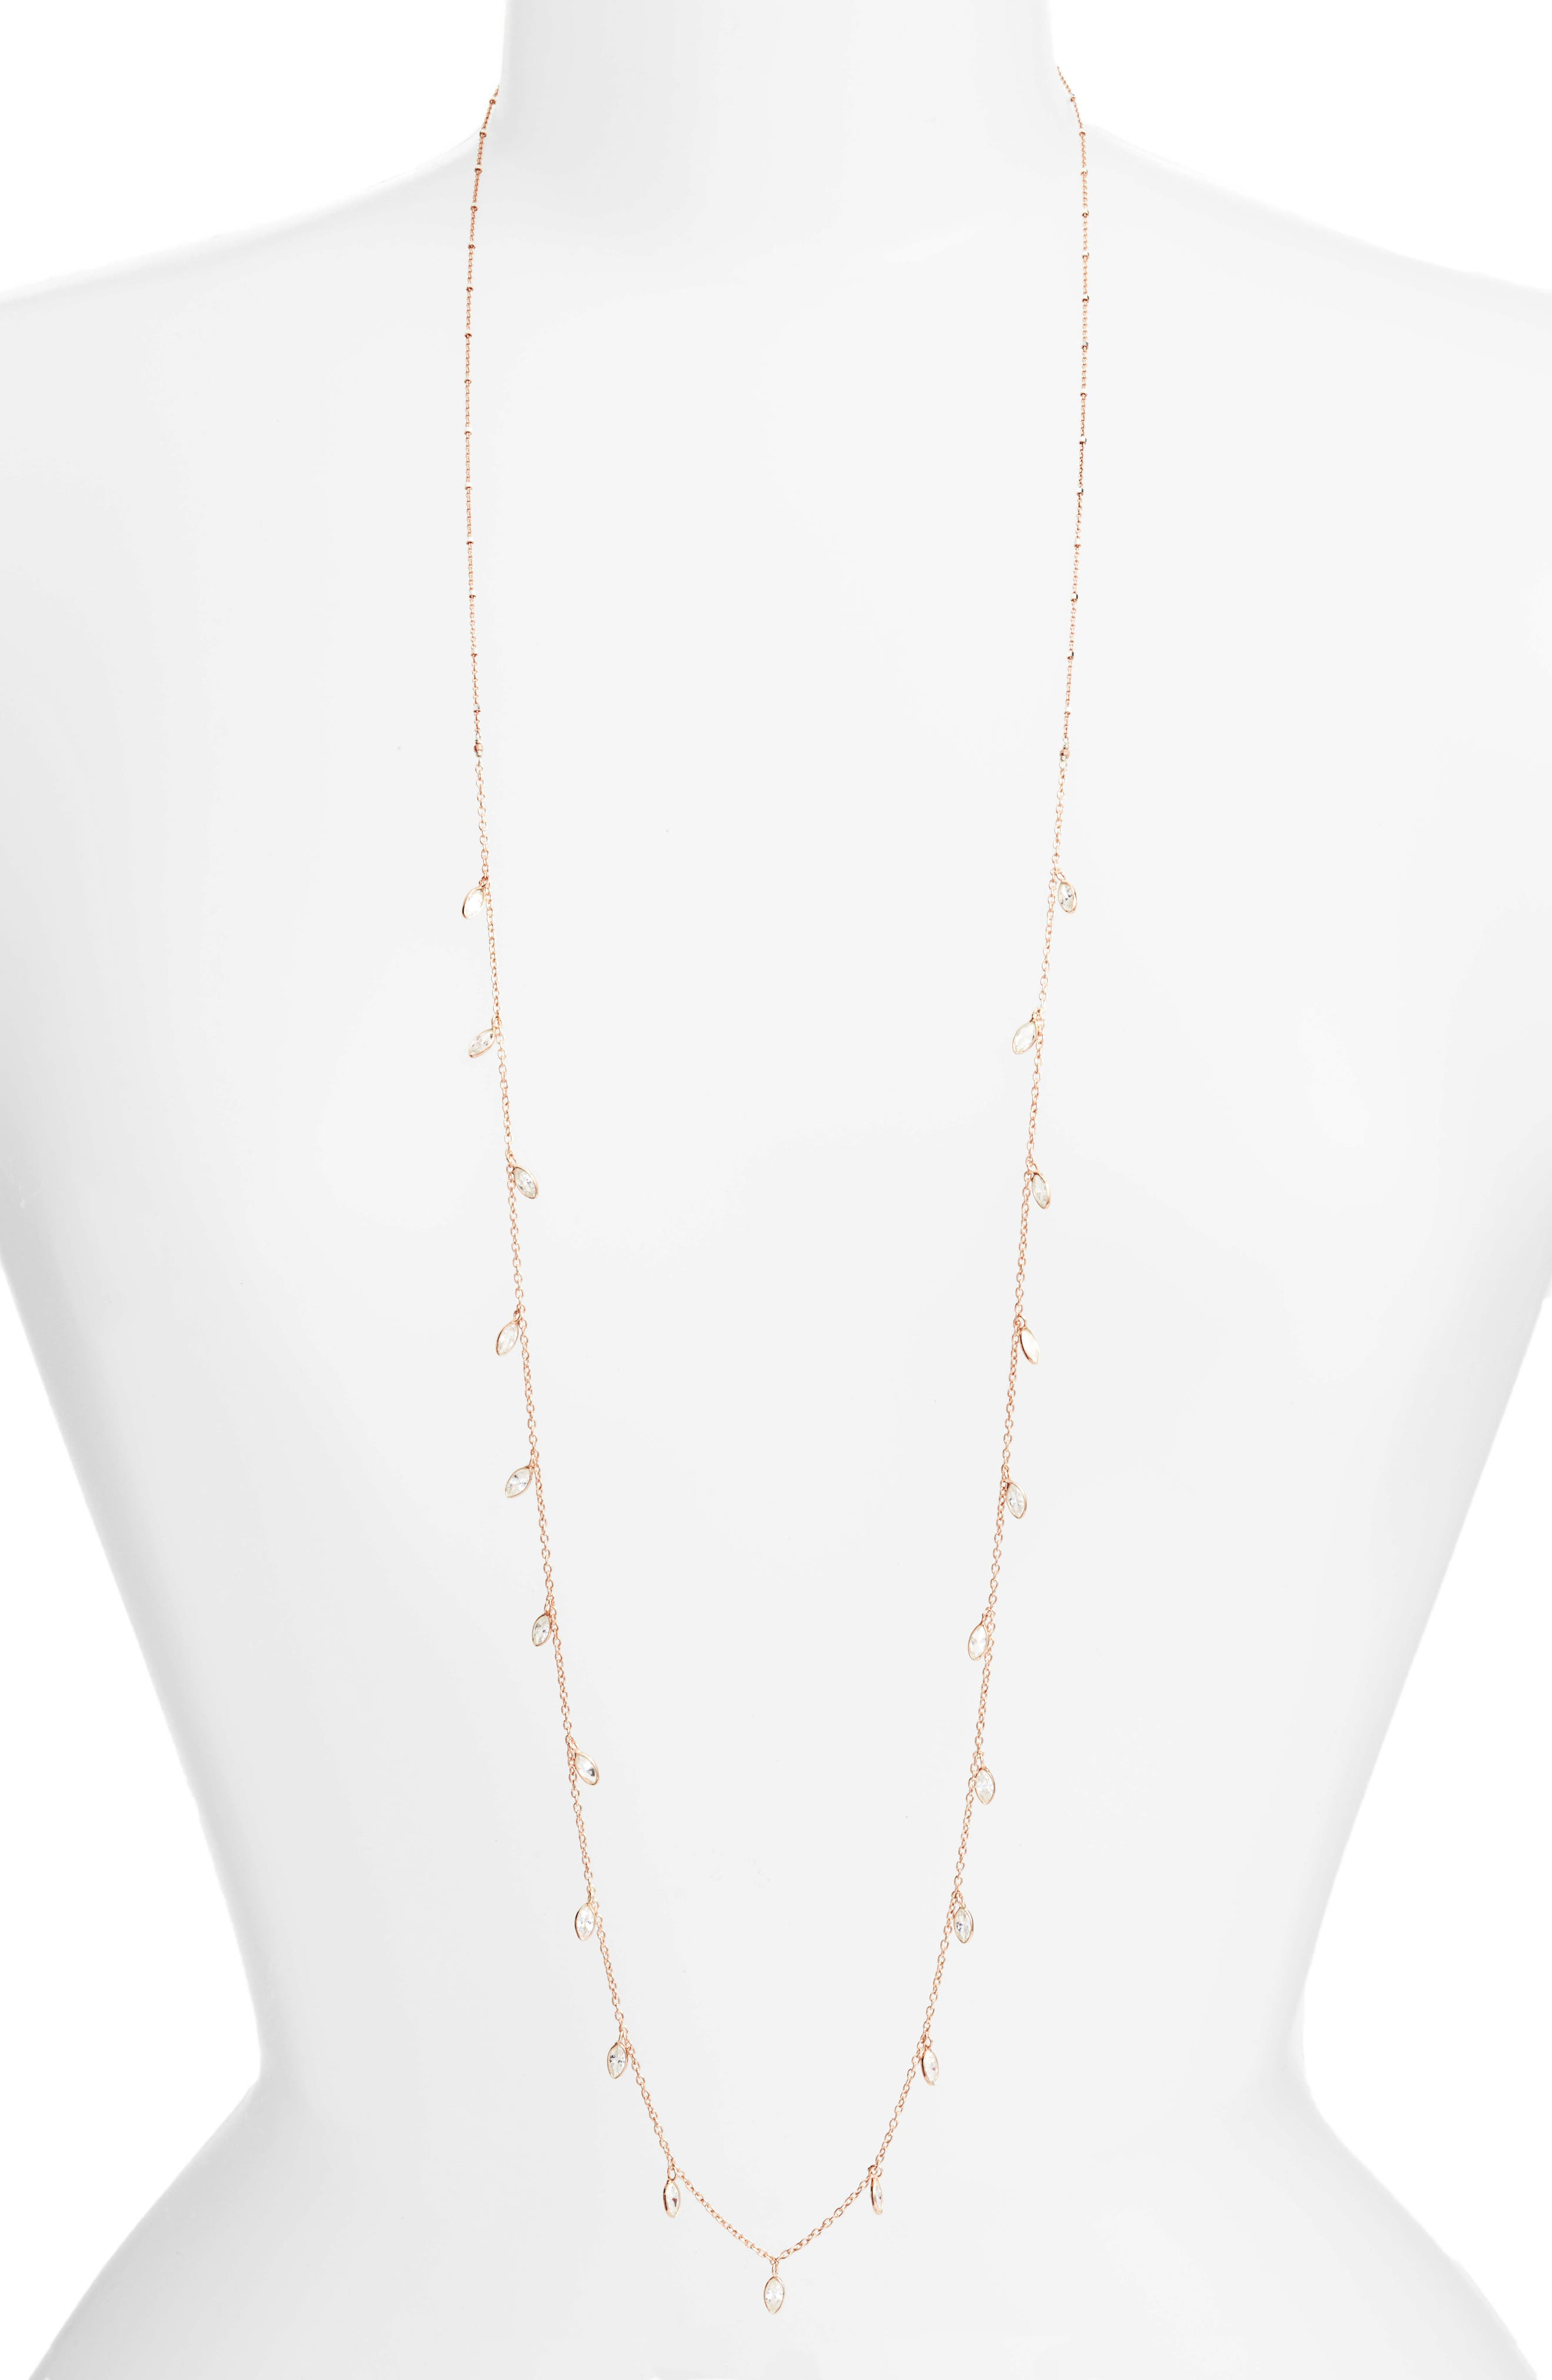 Main Image - Chan Luu Crystal Long Necklace